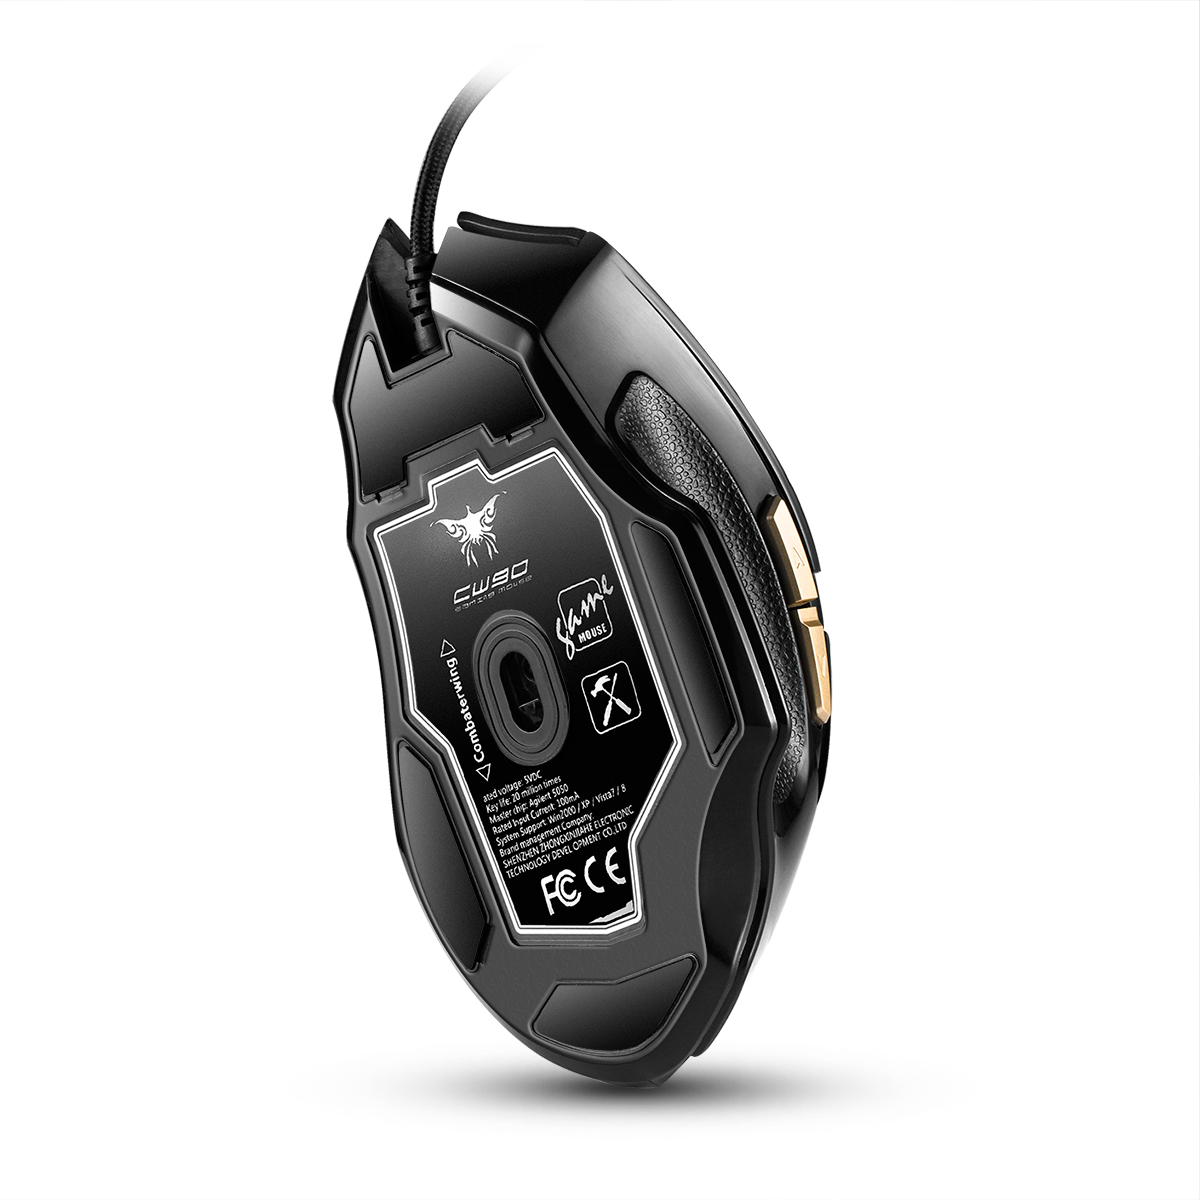 PC Gamer Mouse Gamer Computer Mice 9D Programmable Key 3800 DPI USB Wired Optical ergonomic Gaming Mouse for LOL Dota 2 PUBG in Mice from Computer Office